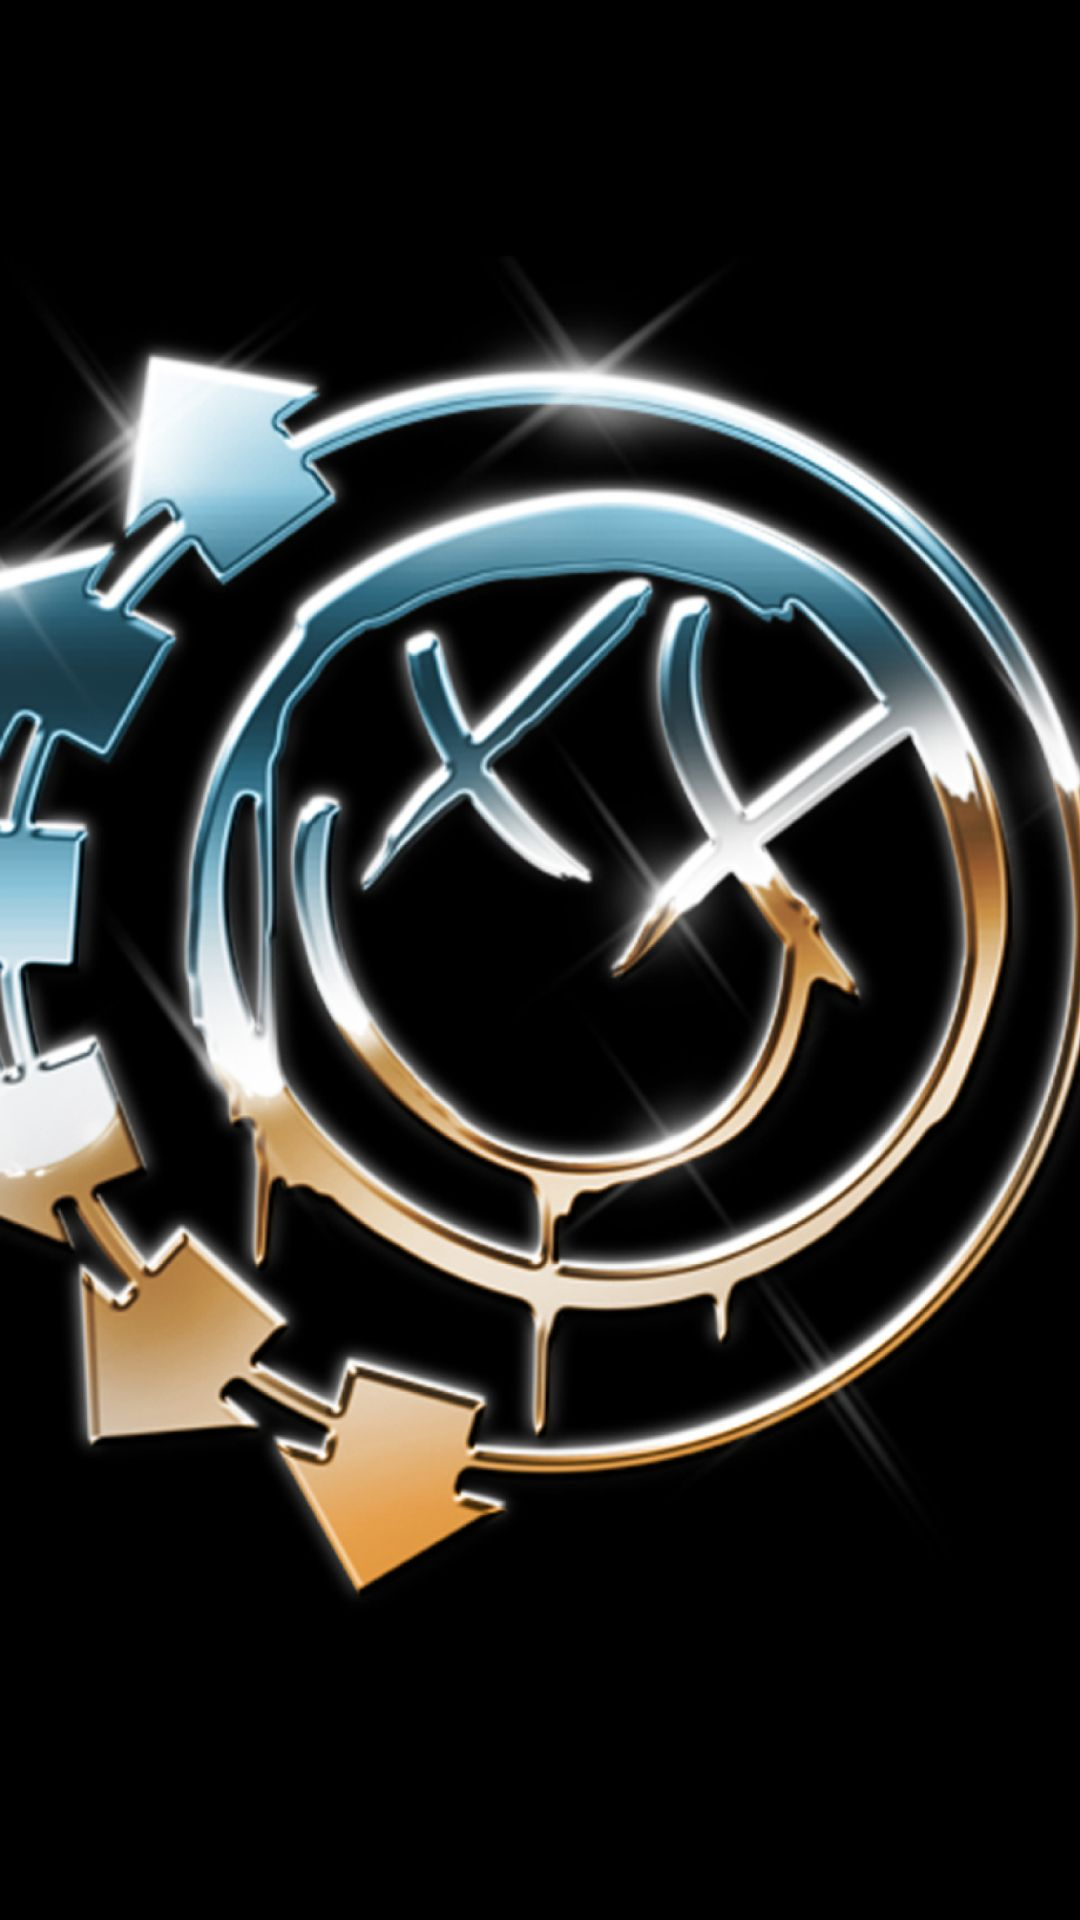 Blink 182 Wallpapers For Iphone 7 Iphone 7 Plus Iphone 6 Plus Blink 182 Wallpaper Blinking Blink 182